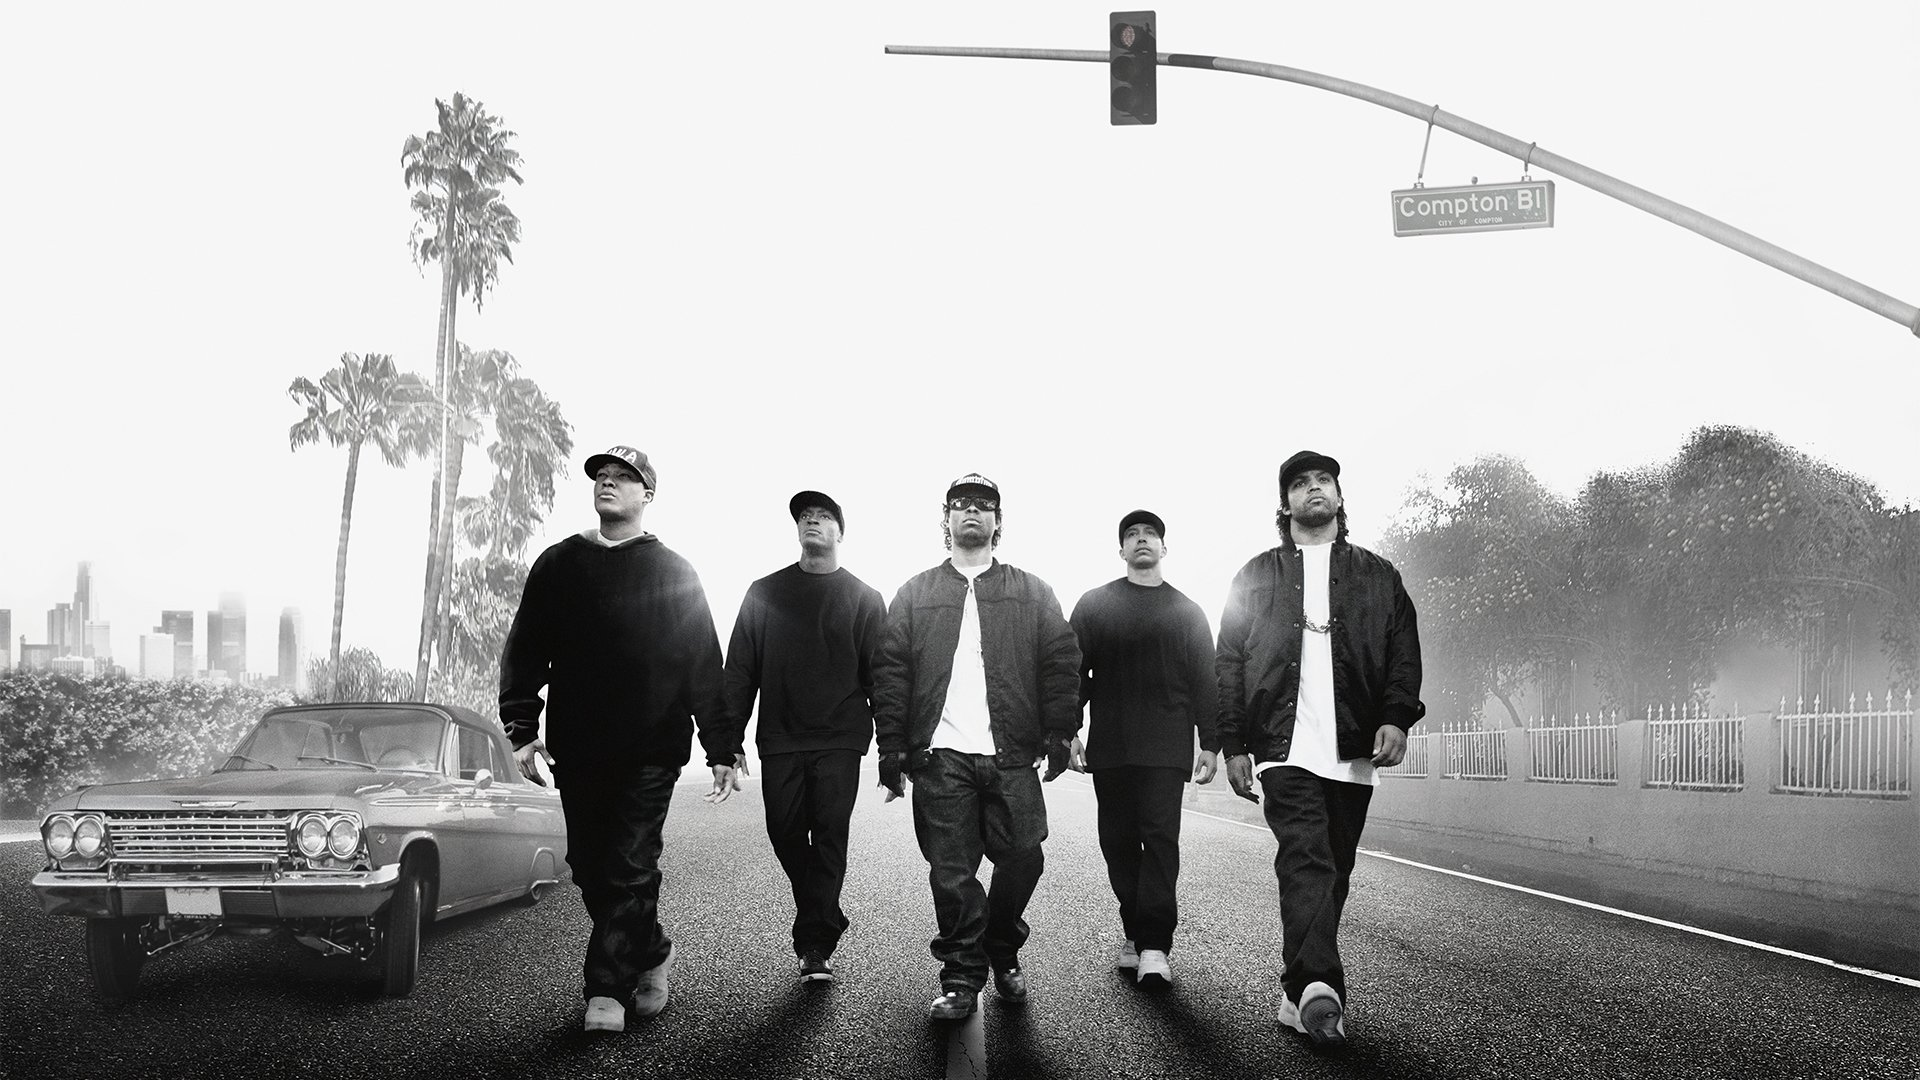 Nwa Iphone Wallpaper Straight Outta Compton Full Hd Wallpaper And Background